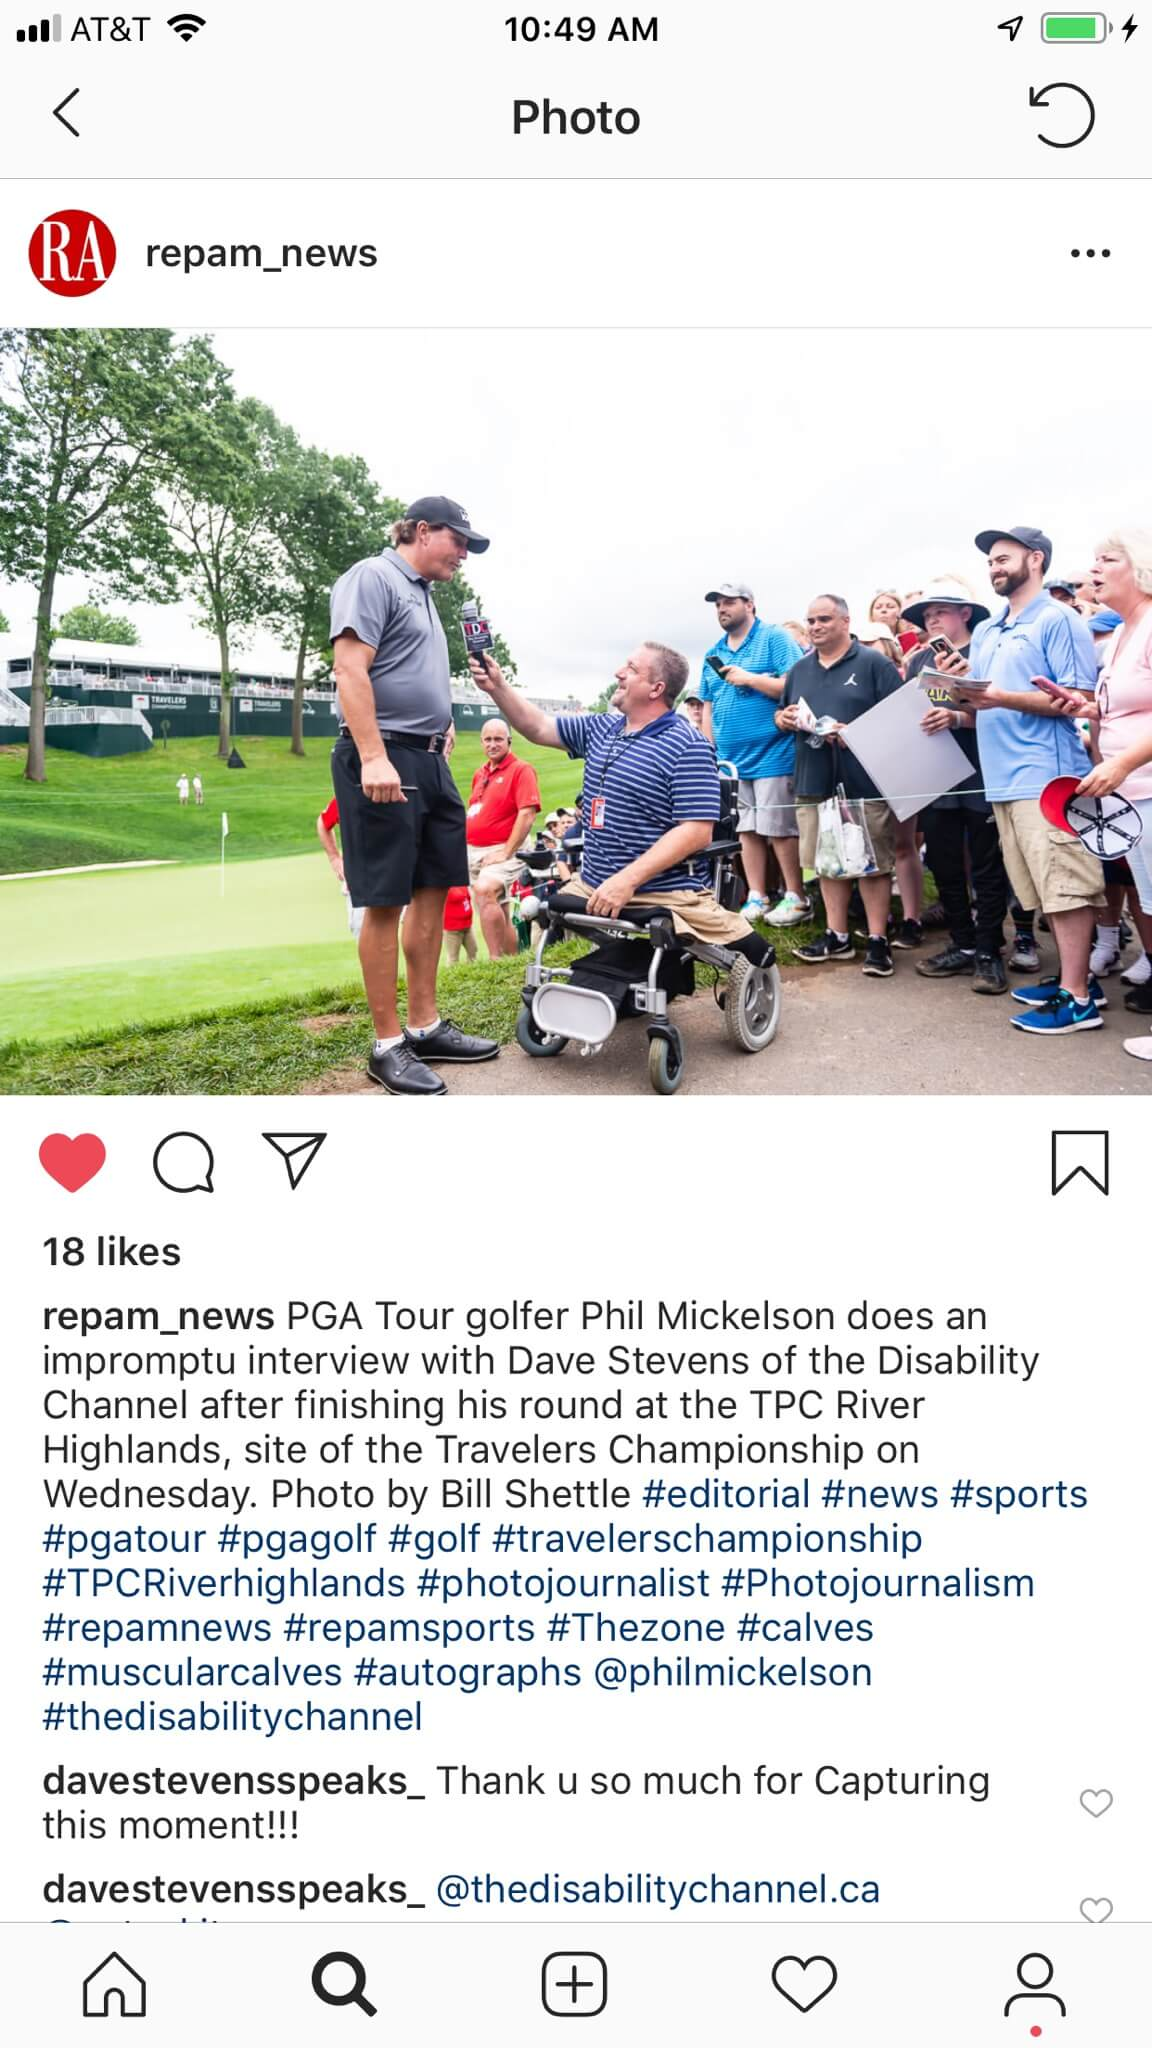 Dave Stevens on the PGA tour